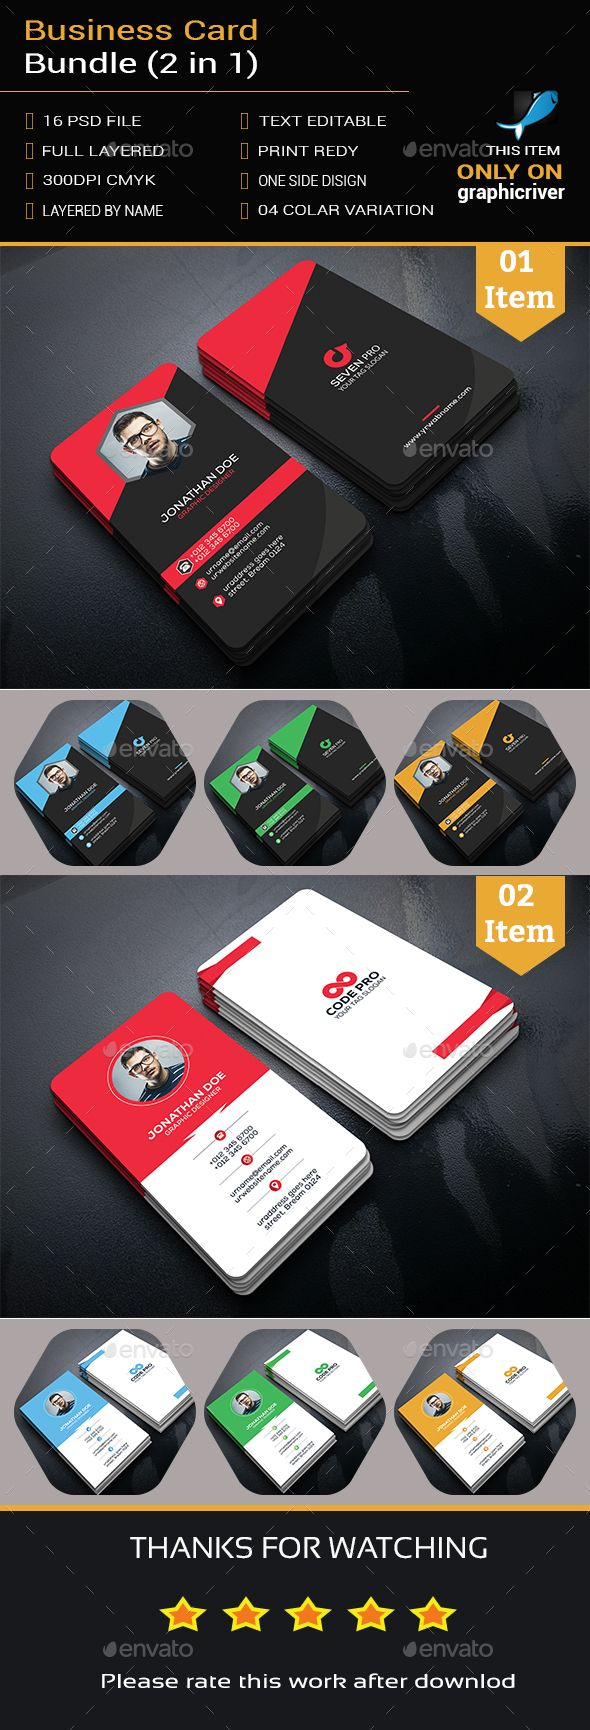 2 Business Card Templates PSD. Download here: http://graphicriver.net/item/business-card-bundle-2-in-1/16803048?ref=ksioks